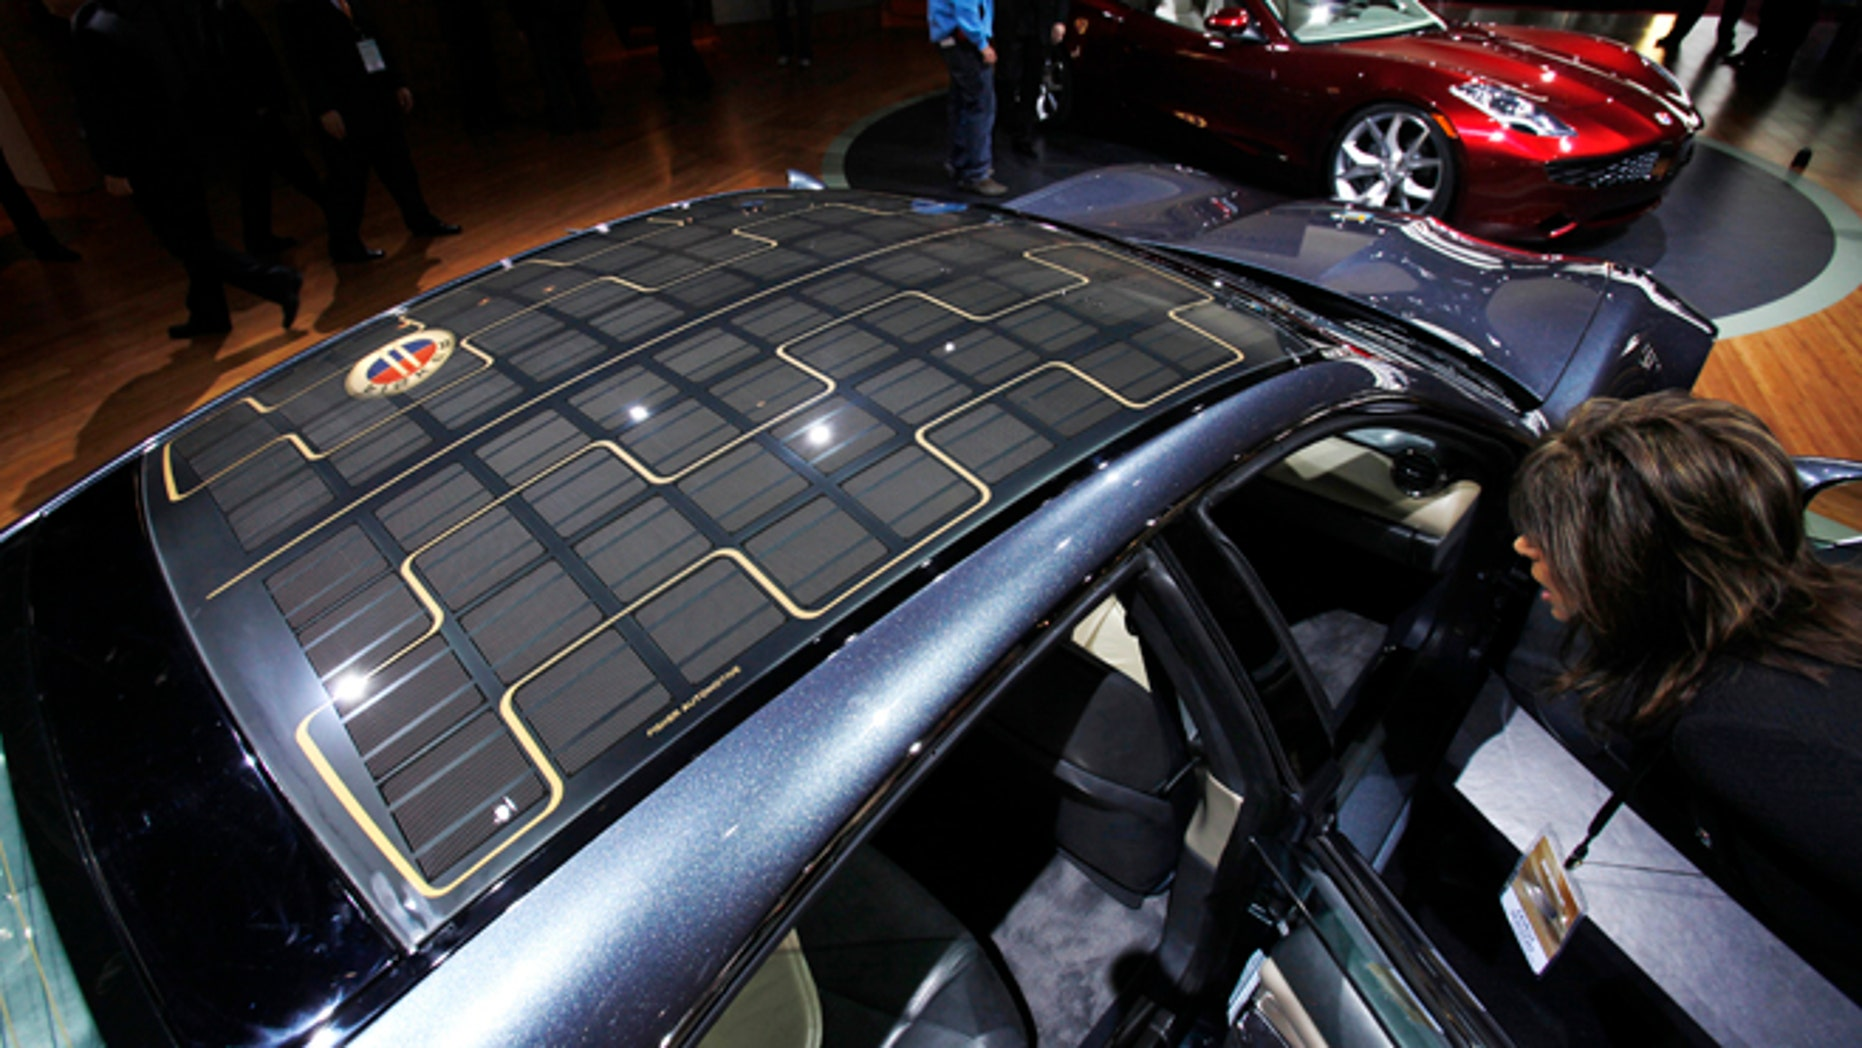 Jan. 13, 2009: A solar roof is seen on a Fisker Karma hybrid electric car during the North American International Auto Show in Detroit, Michigan.